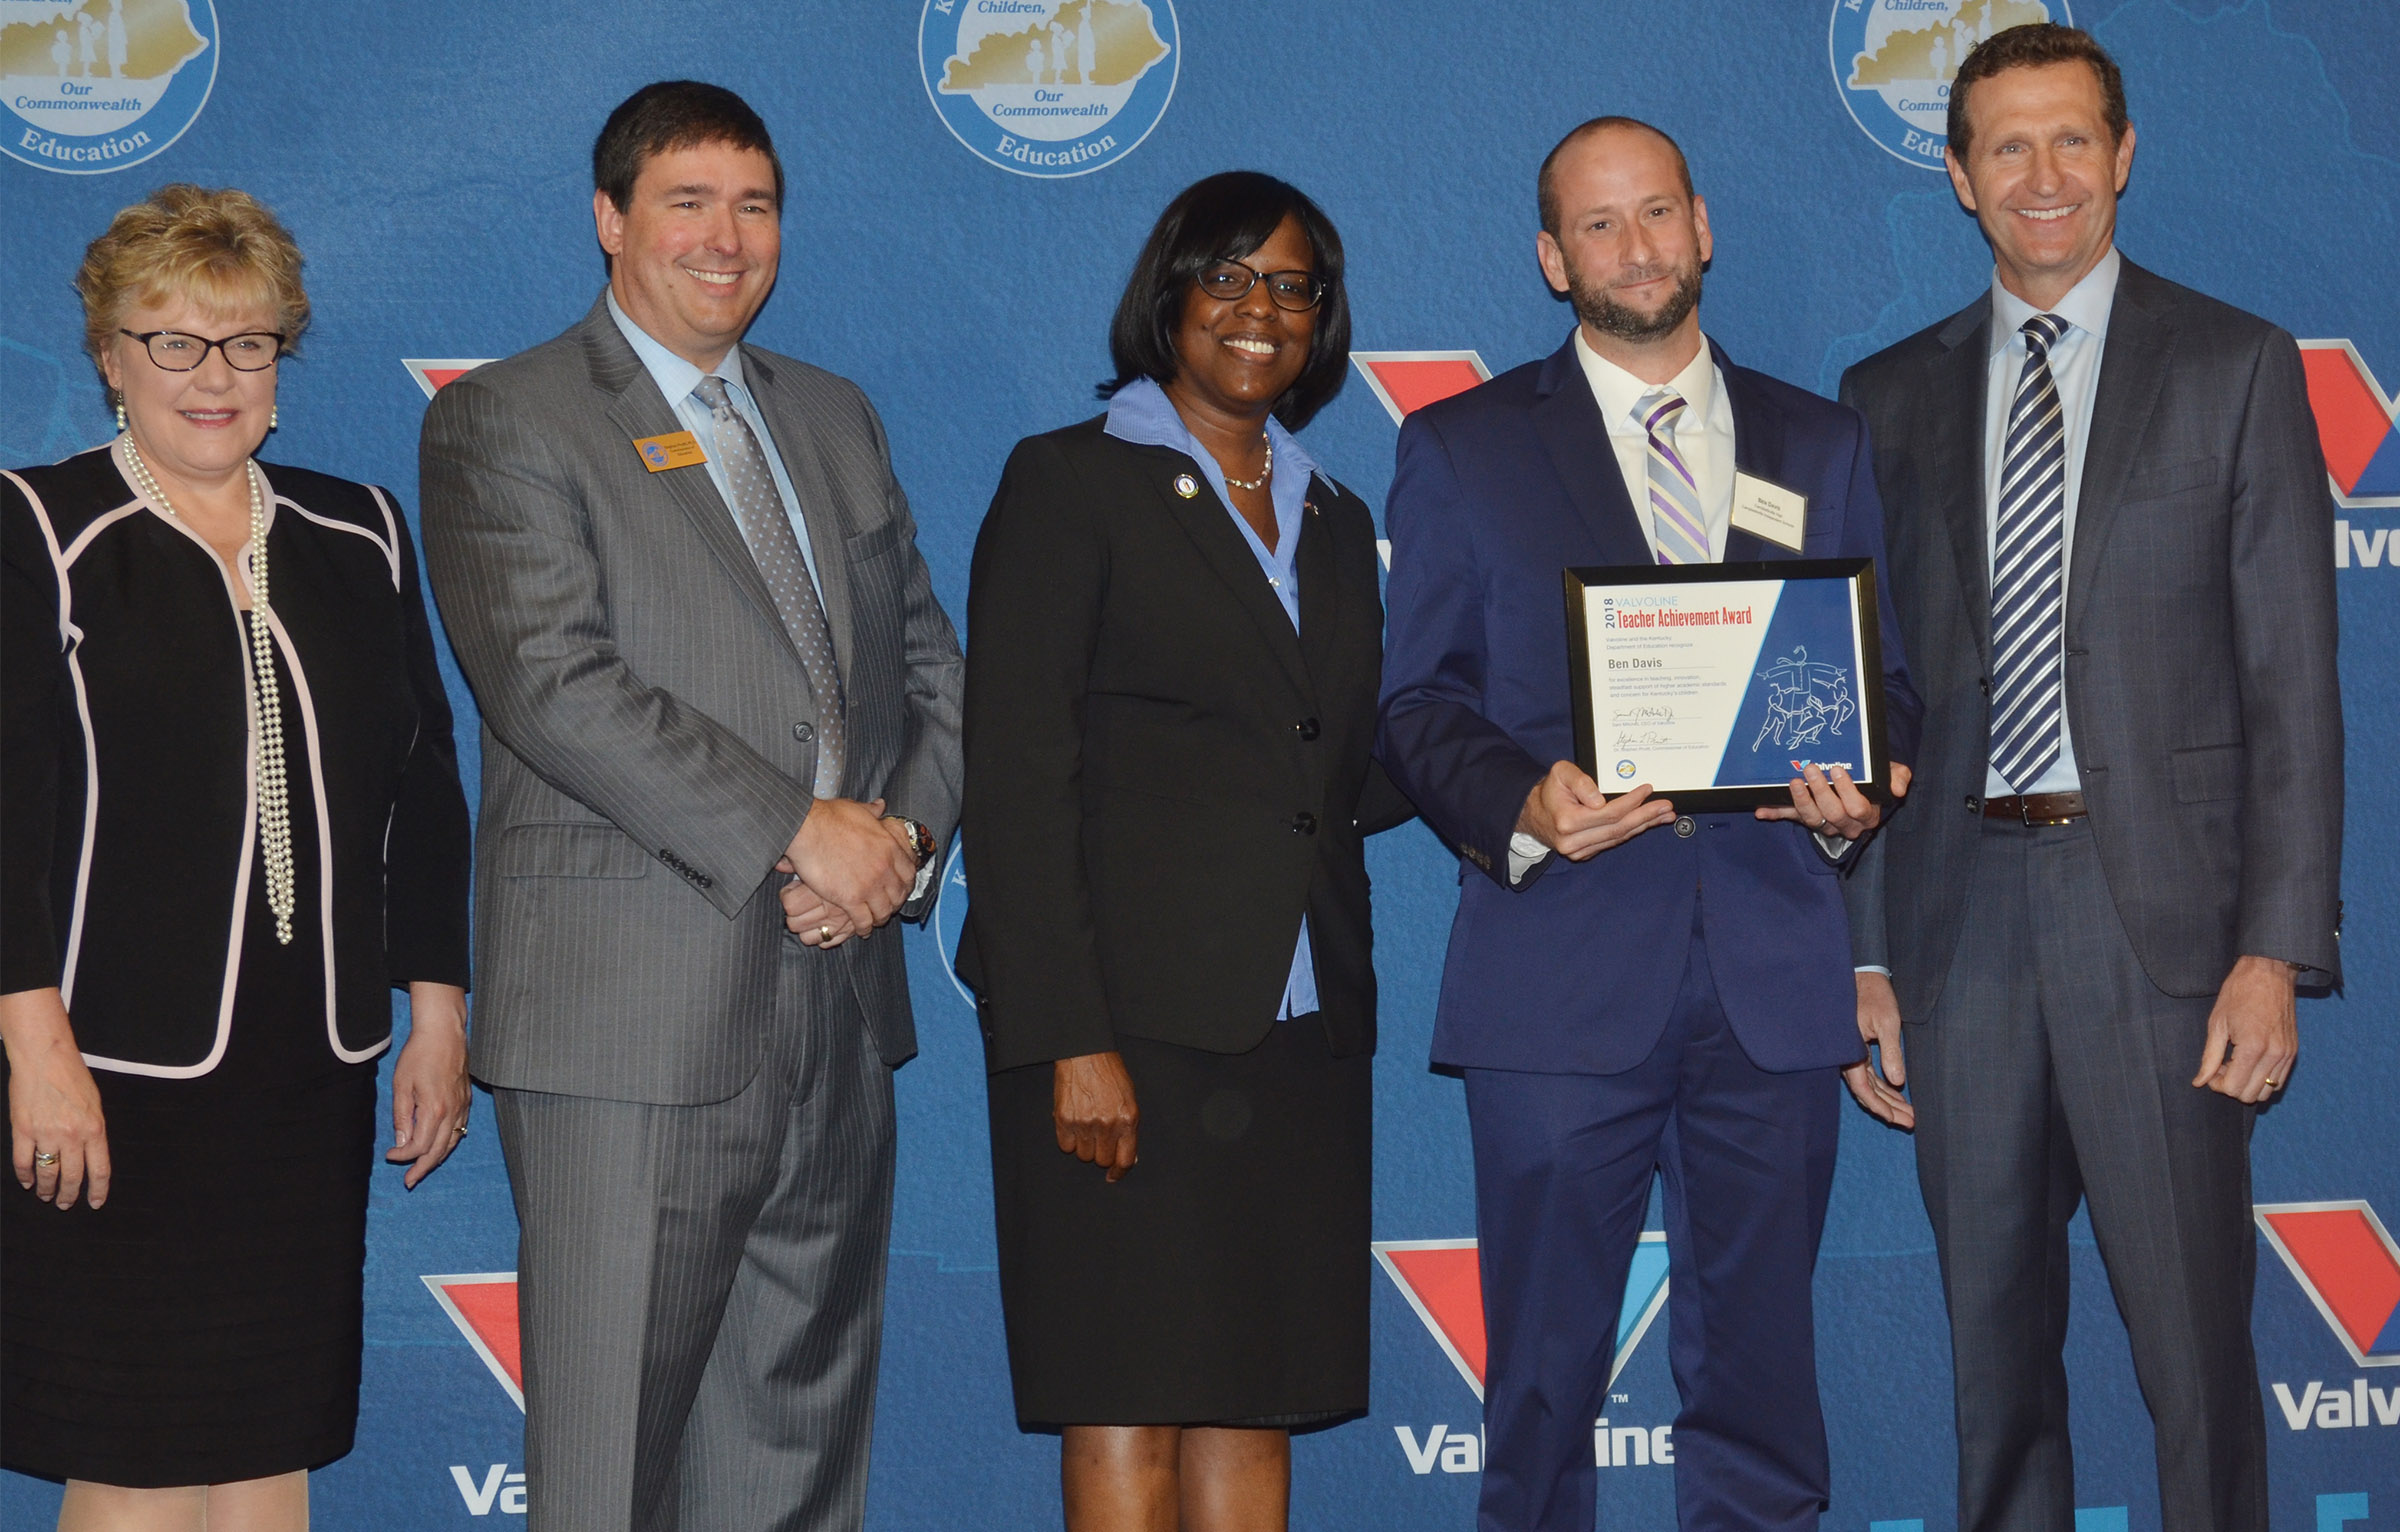 CHS teacher Ben Davis, fourth from left, receives his Teacher Achievement Award. Pictured with Davis are, from left, Mardi Montgomery, director for policy and legislation at the Kentucky Education and Workforce Development Cabinet; Commissioner of Education Dr. Stephen Pruitt; Kentucky Lt. Gov. Jenean Hampton and Sam Mitchell, chief executive officer of Valvoline.